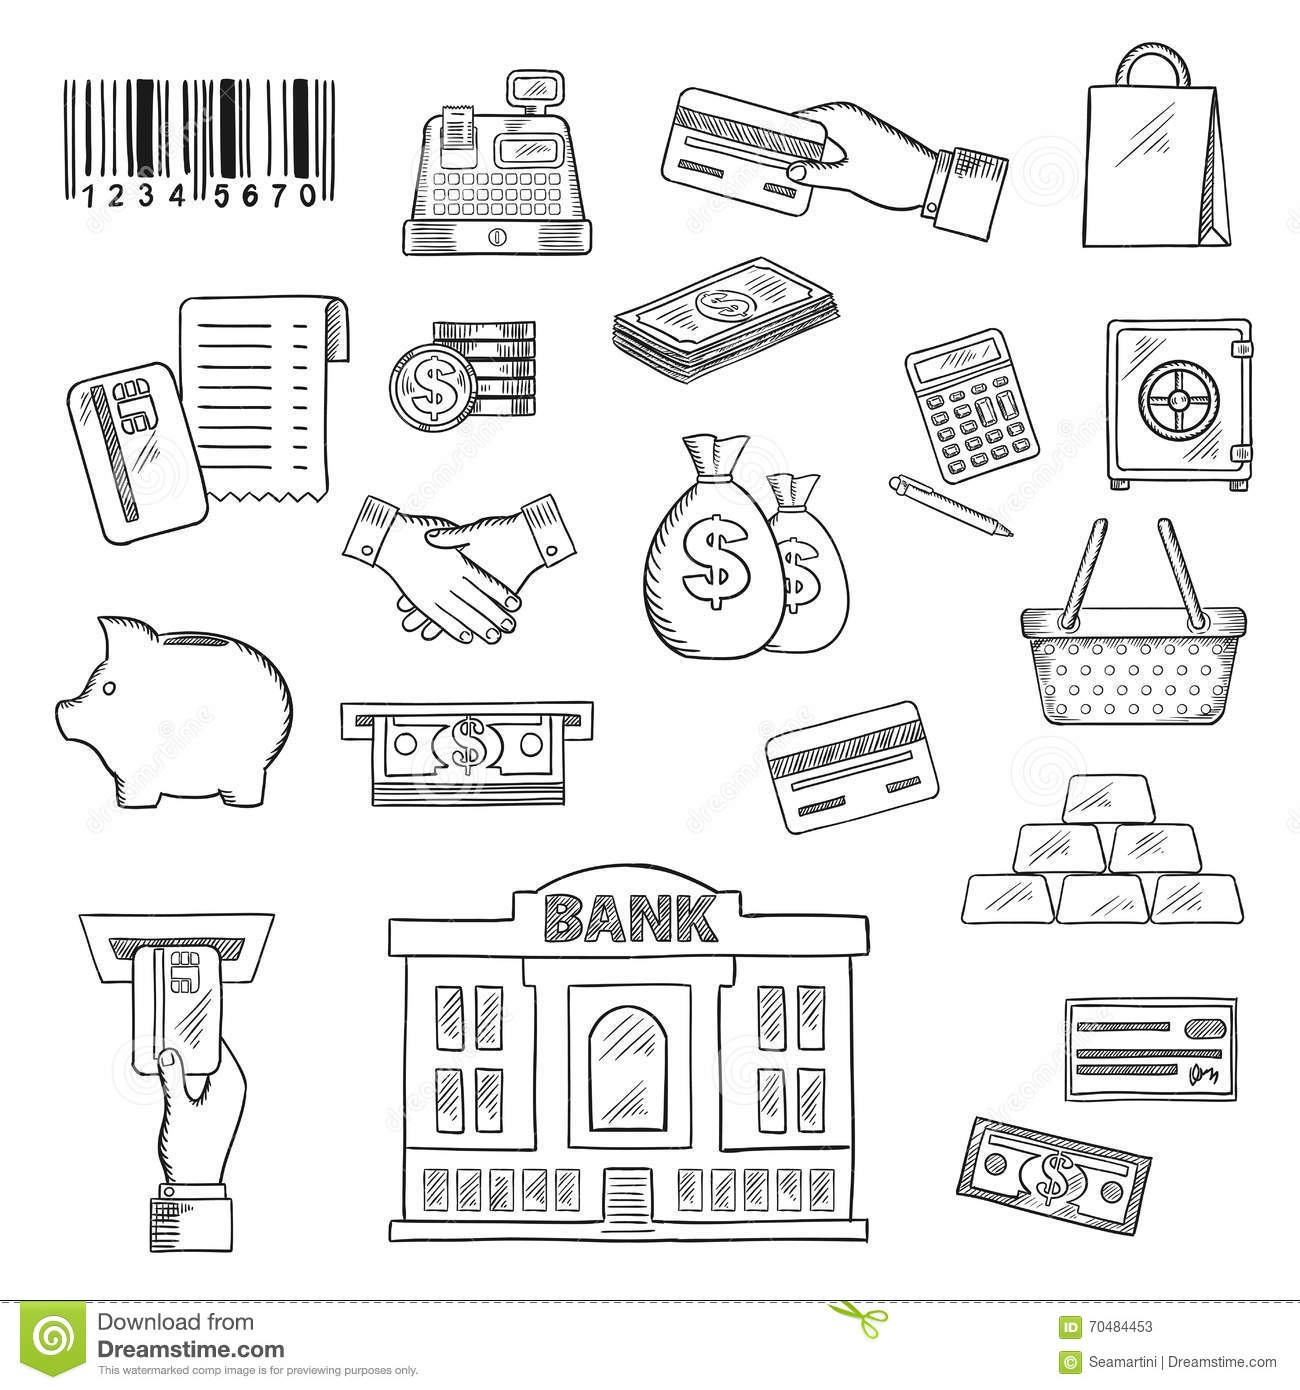 Money, Banking Services, Shopping Sketch Symbols Stock